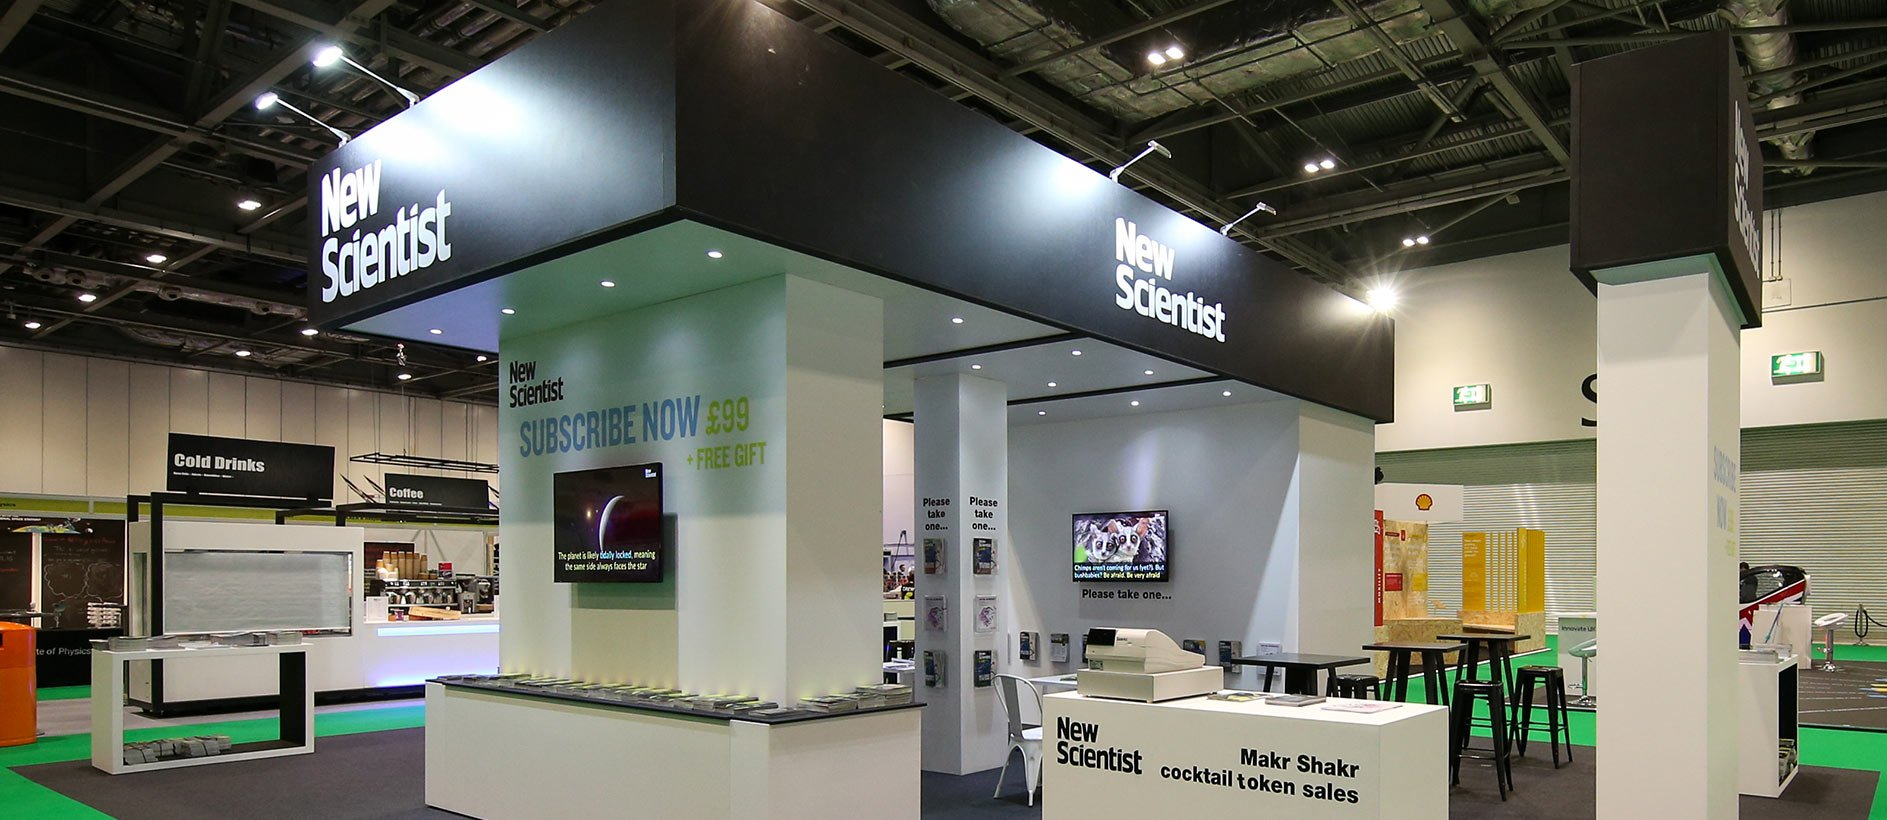 New Scientist exhibition display